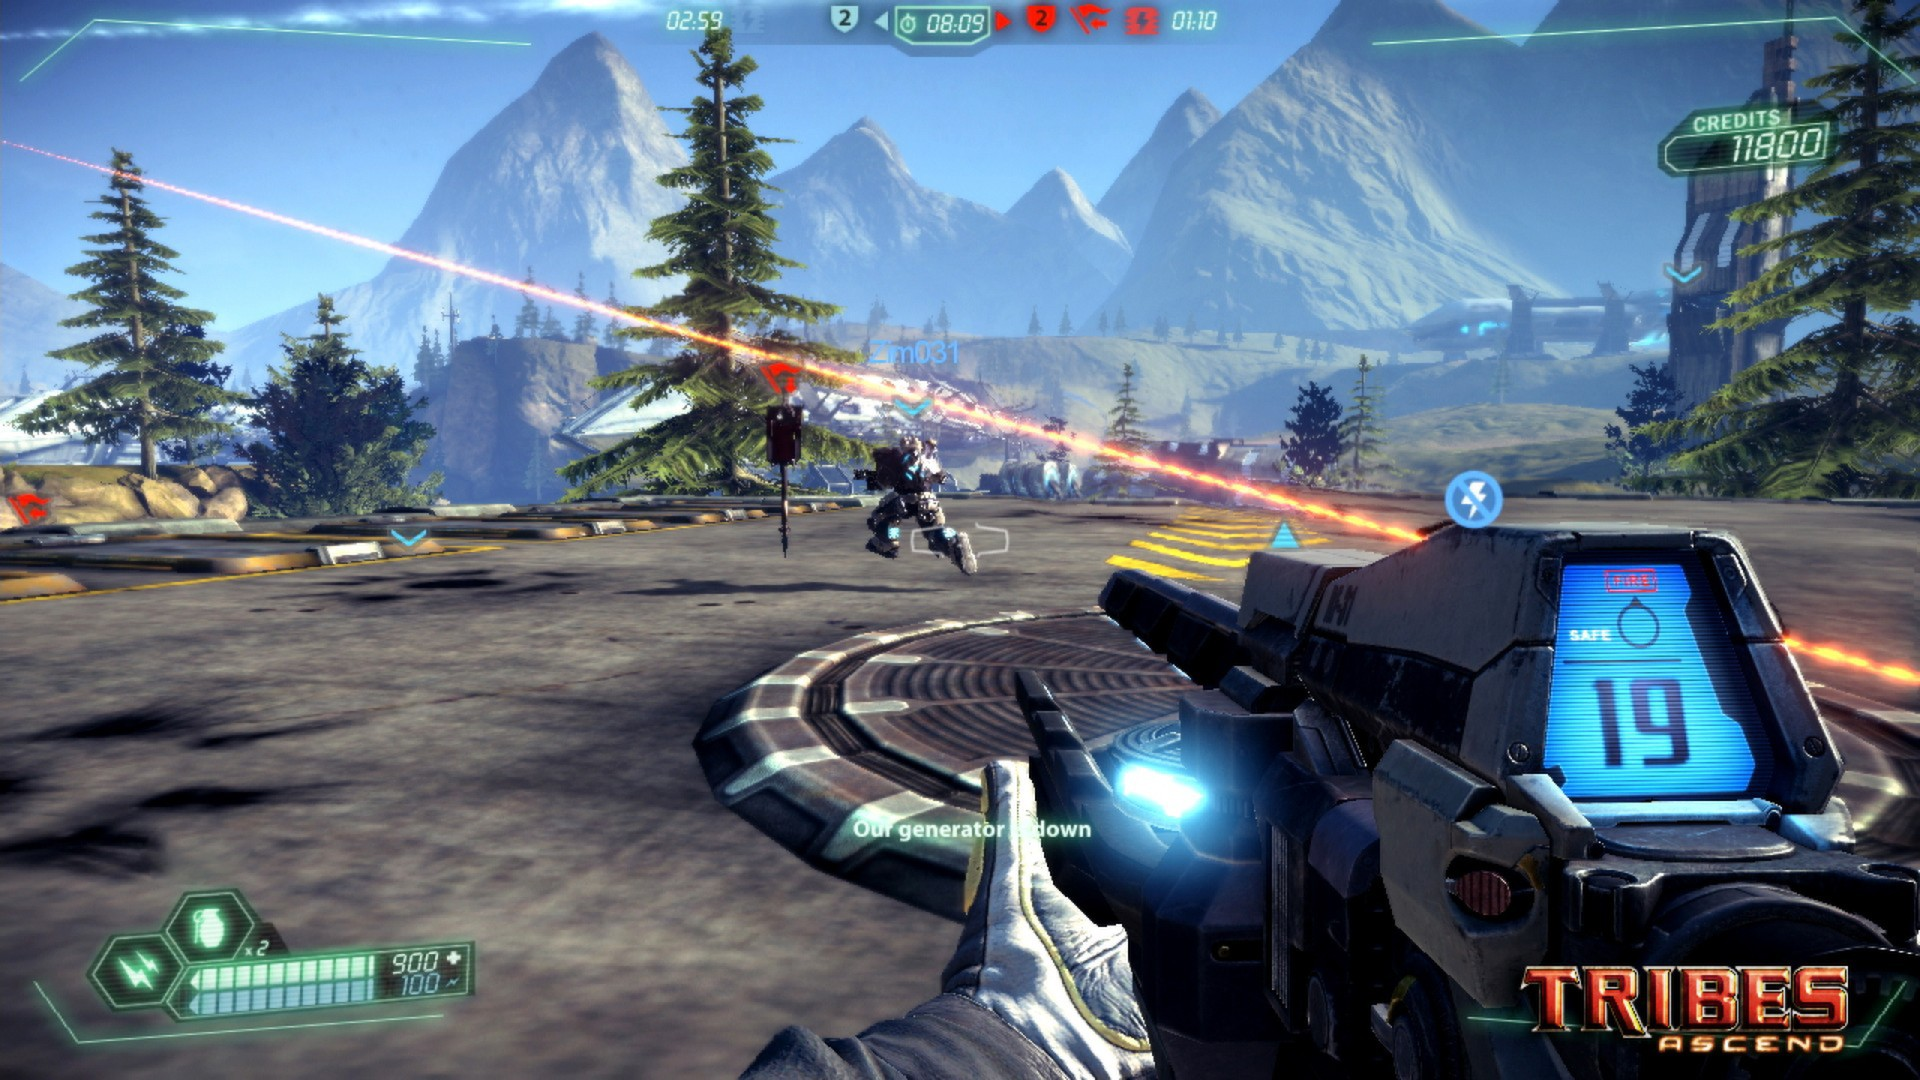 Nice wallpapers Tribes Ascend 1920x1080px